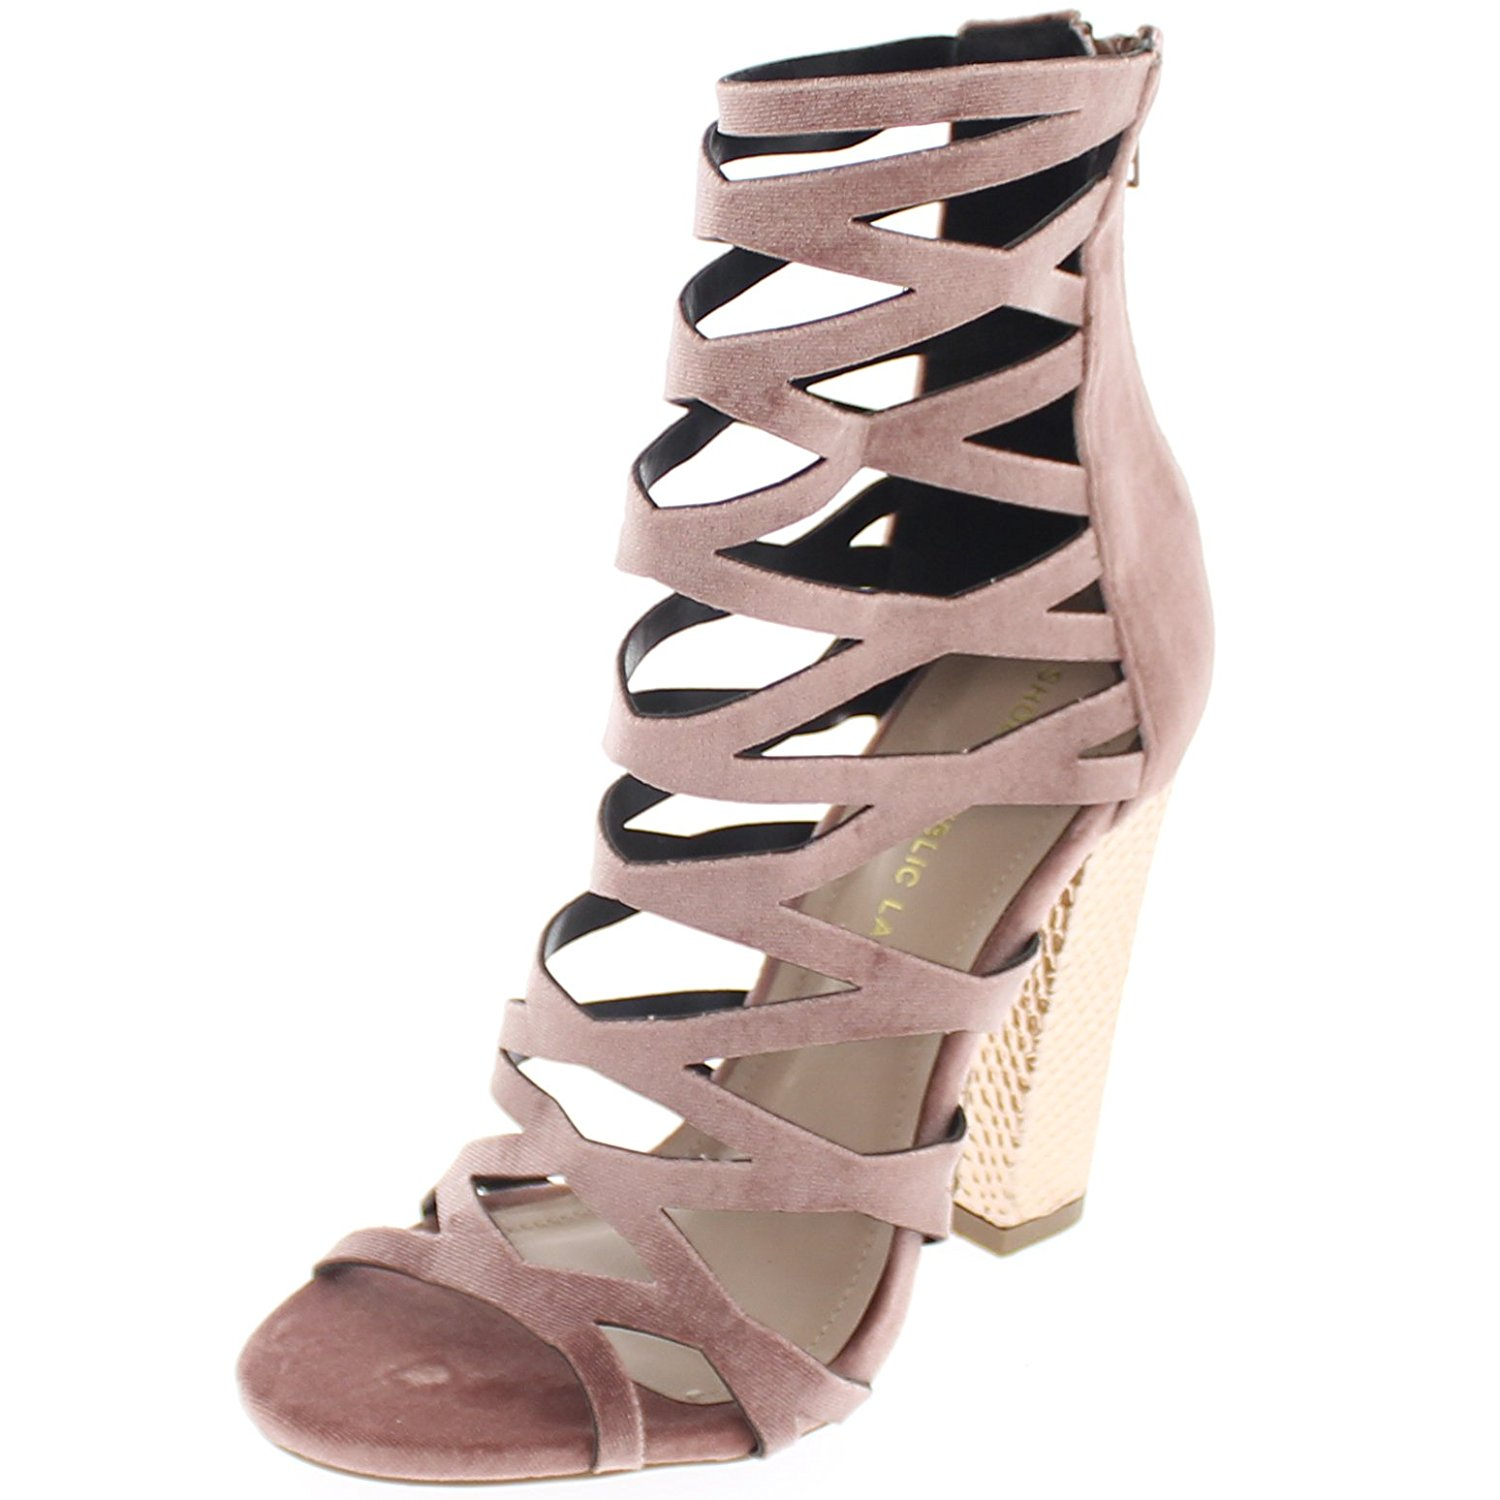 3ae9a4aa313 Get Quotations · Shoe Republic Gladiator Open Toe Ankle High Sandal Shimmy